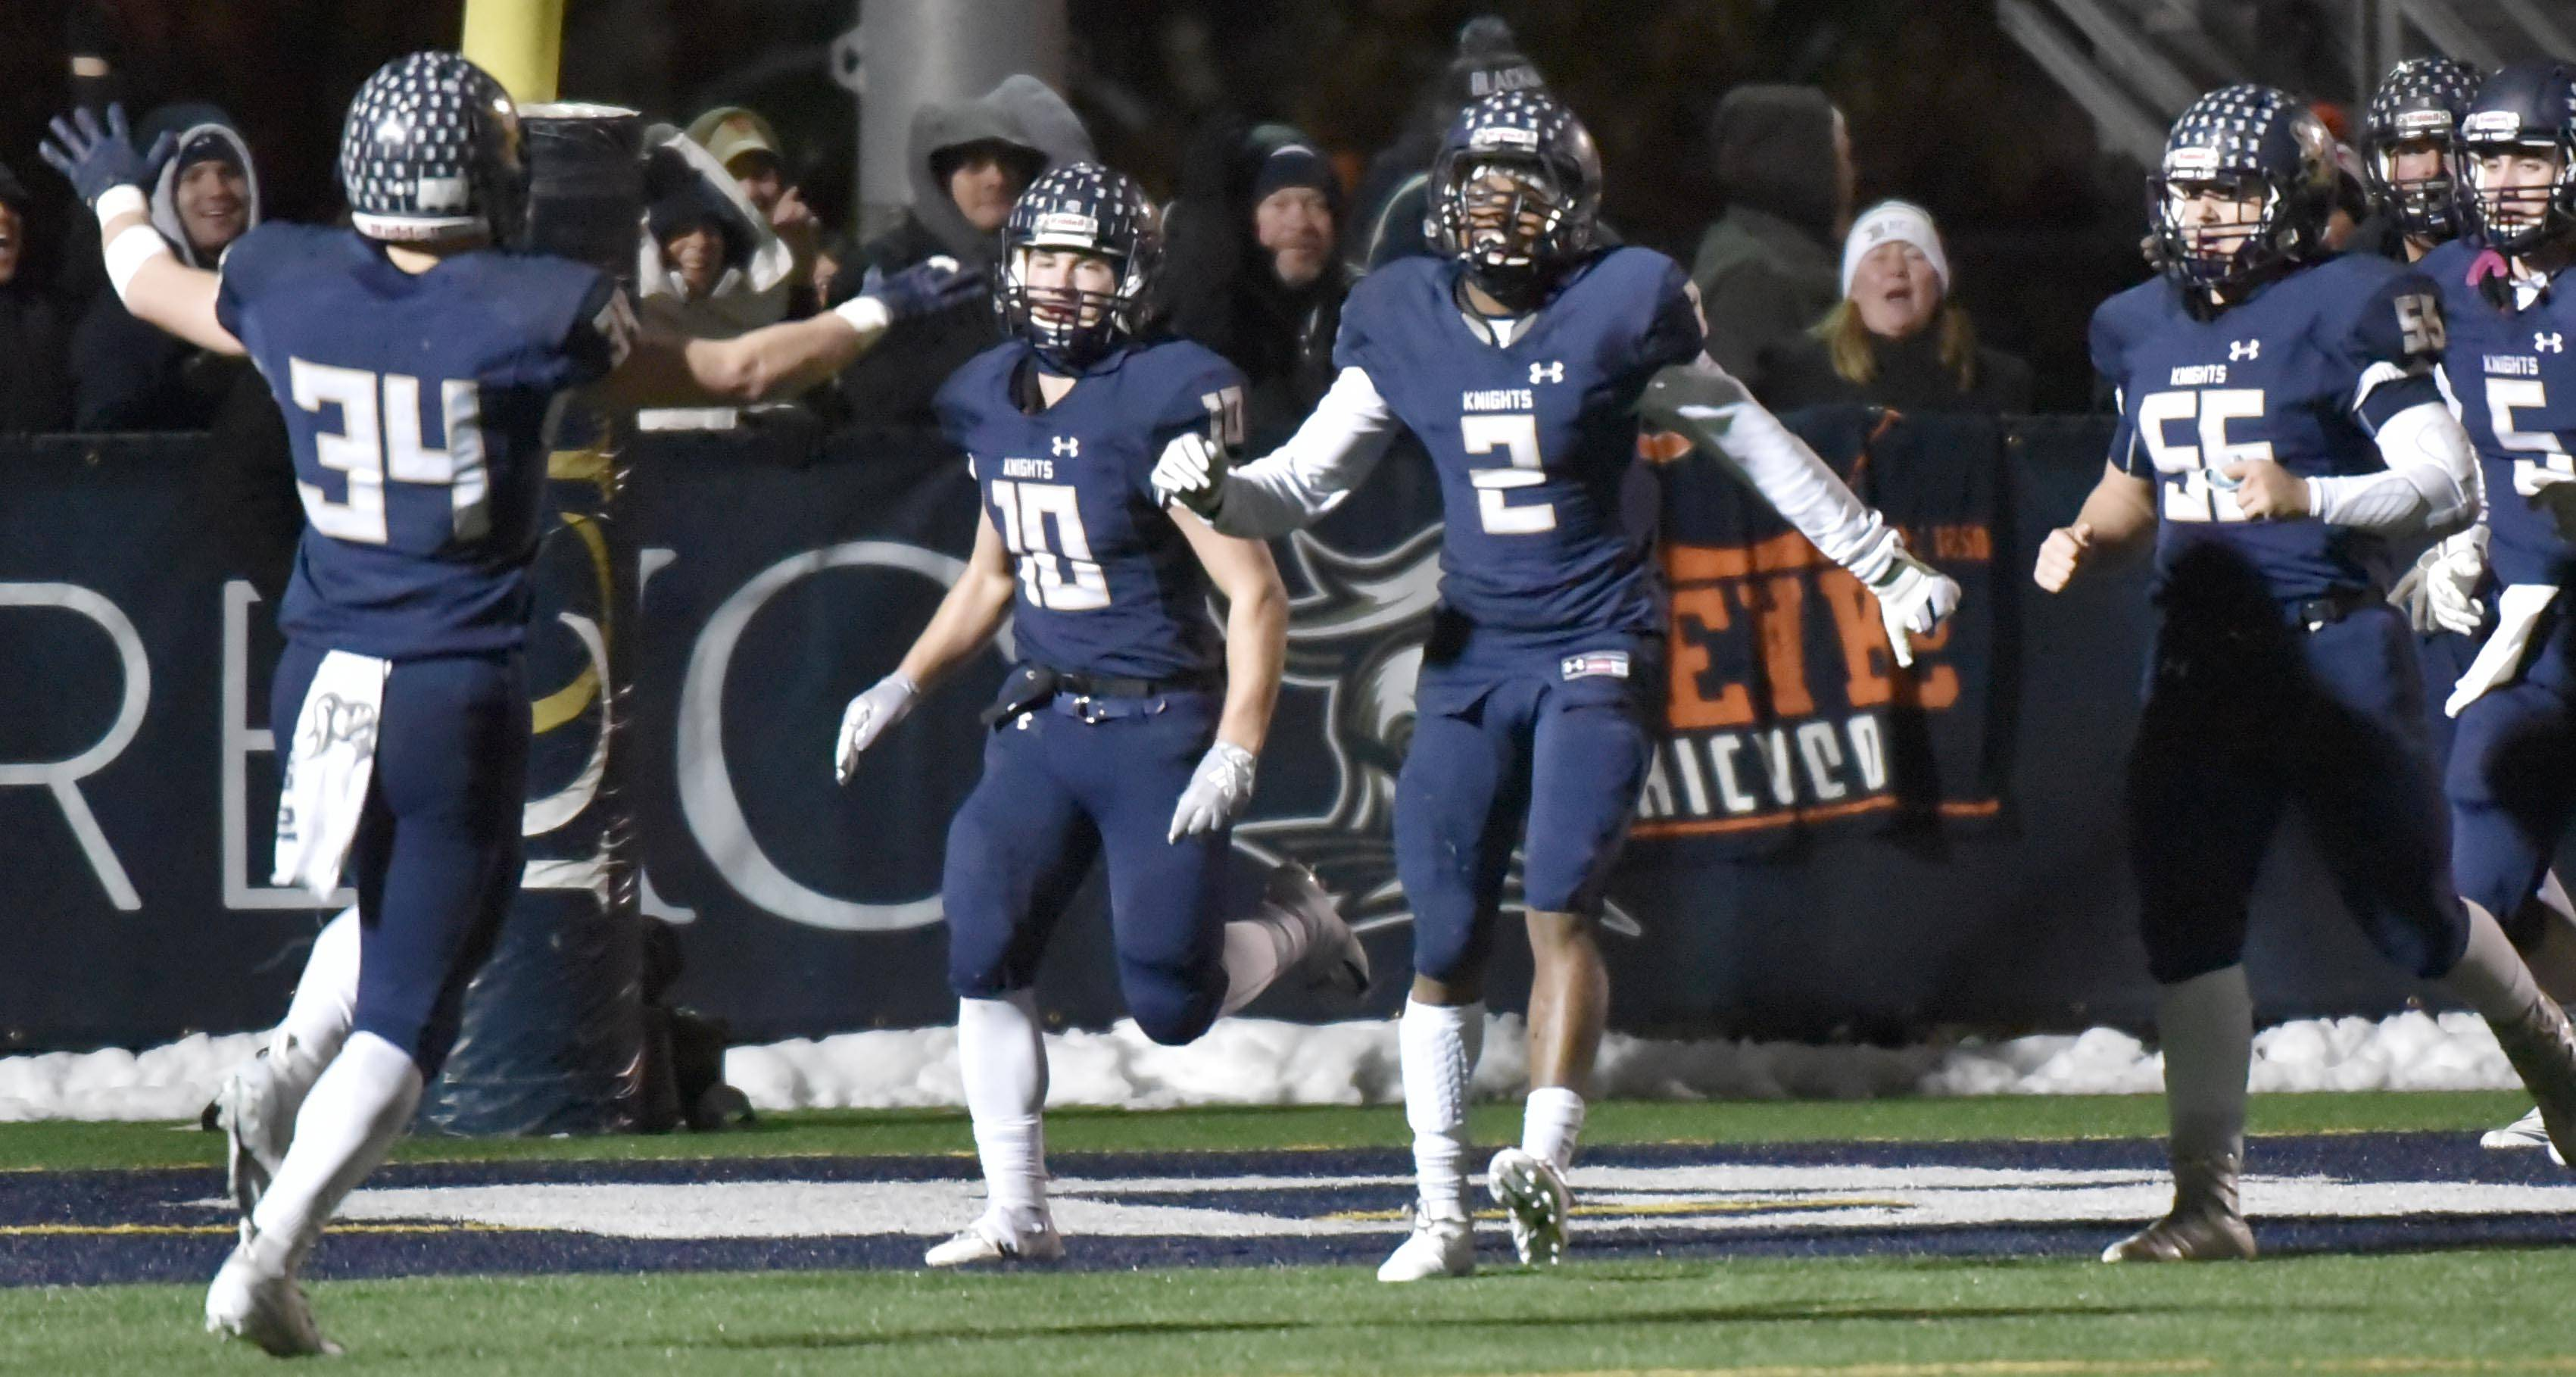 IC Catholic's Chauncey Lee celebrates with teammates after his interception return for a touchdown in the final minutes of the Knights win against Richmond-Burton in a semifinal football playoff game Saturday in Elmhurst.